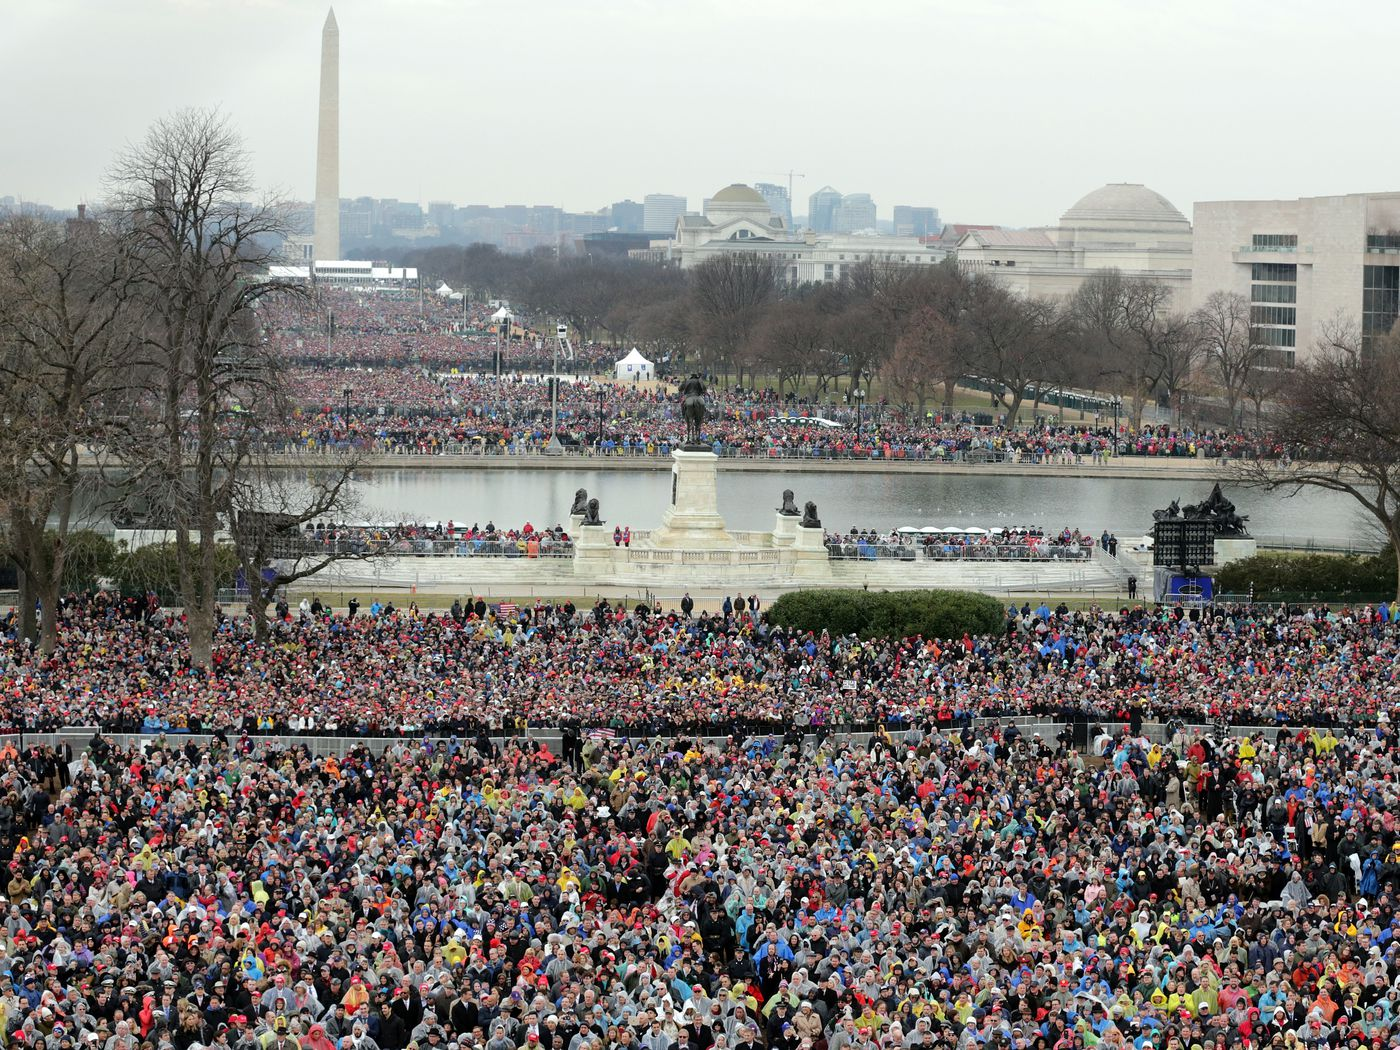 Trump Claims 15 Million People Came To His Inauguration Heres